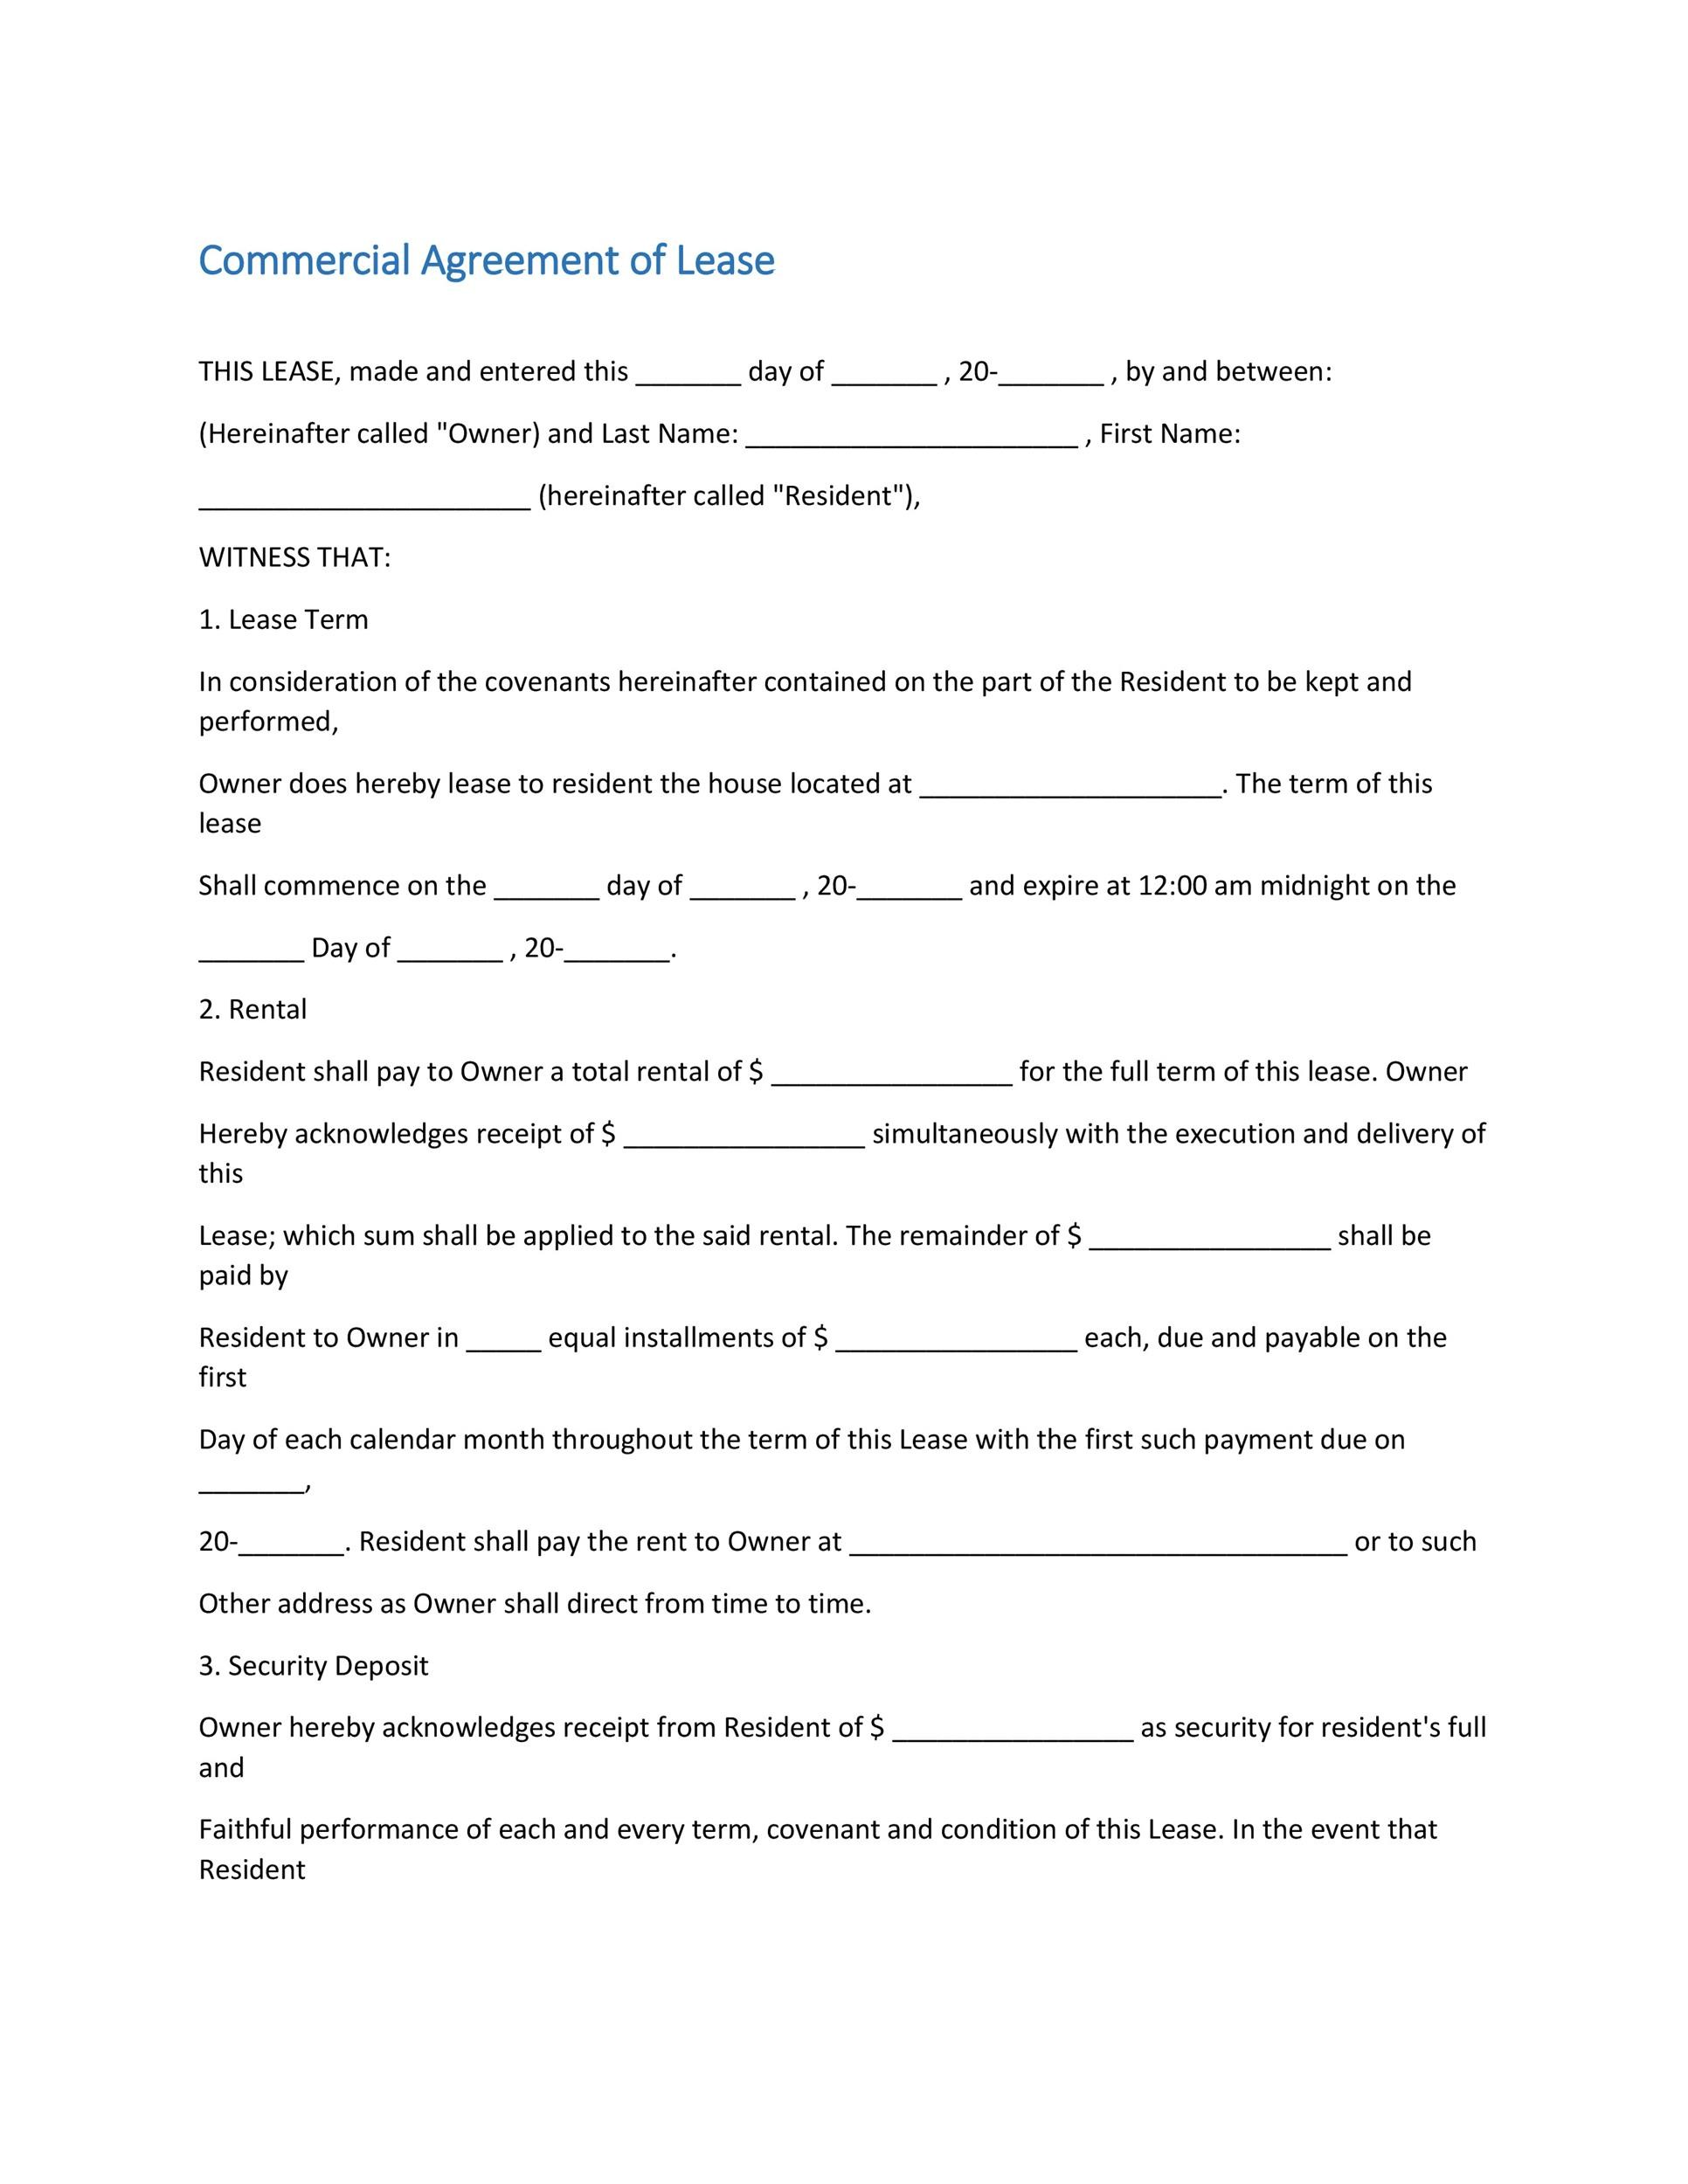 Superior Printable Commercial Lease Agreement Template 16 Nice Look